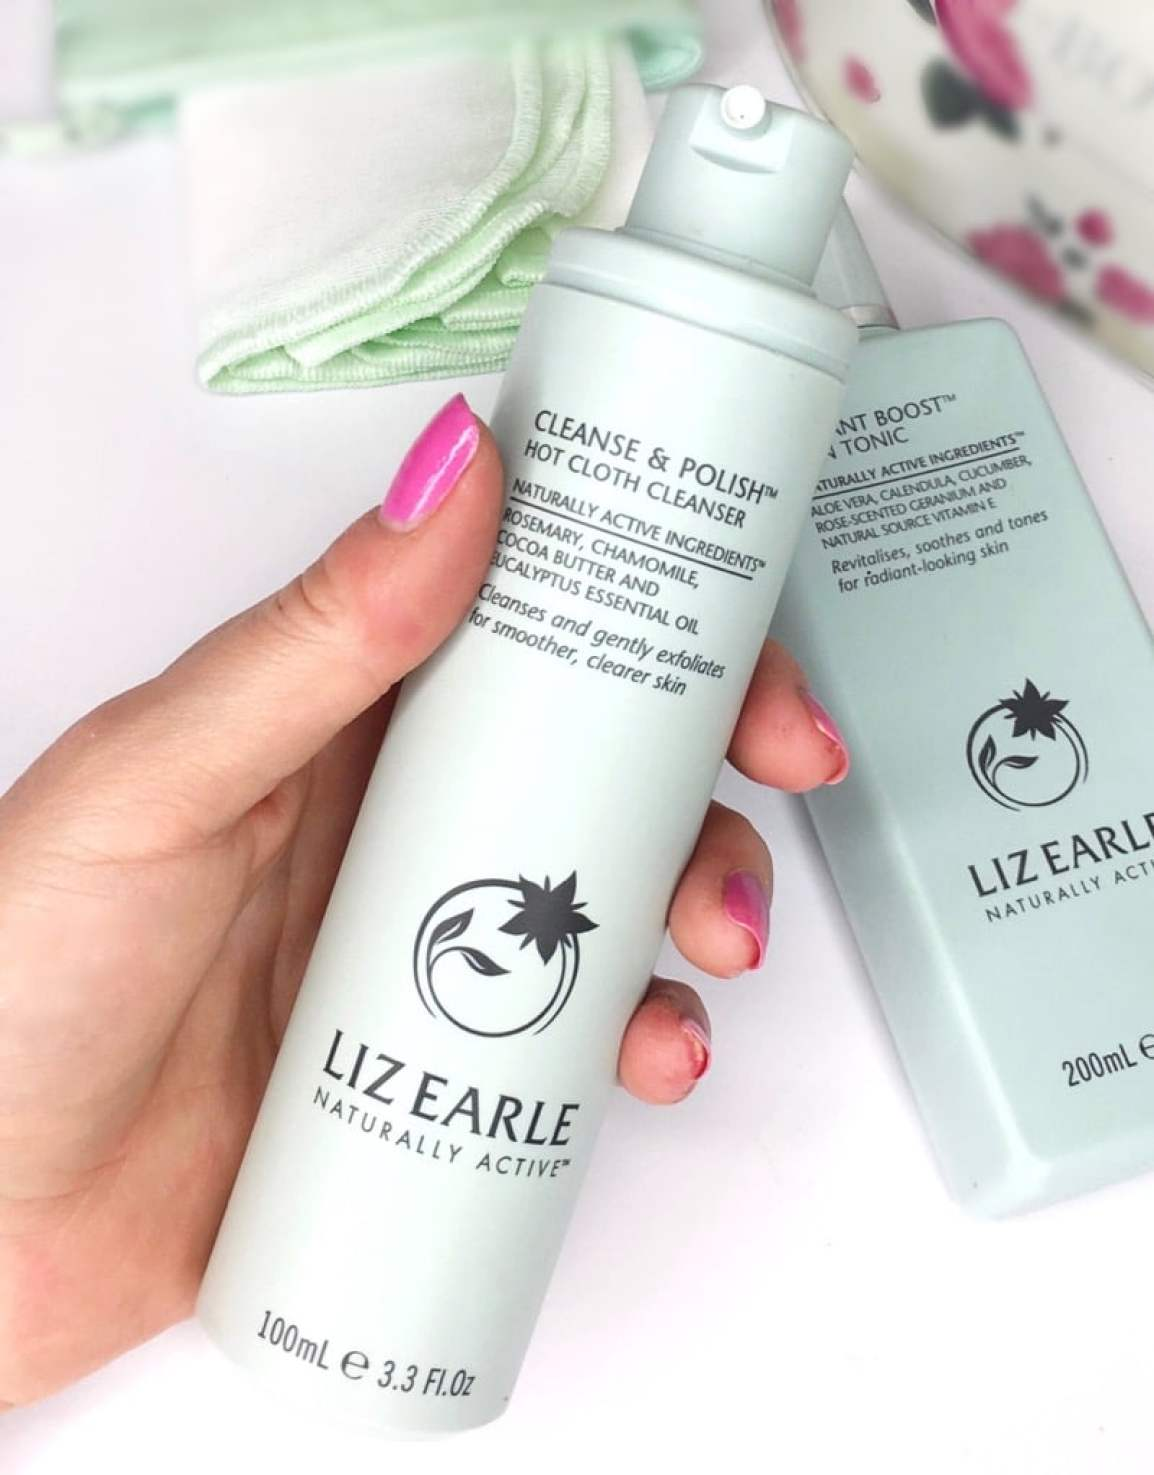 Showing the consistency of Liz Earle Cleanse And Polish